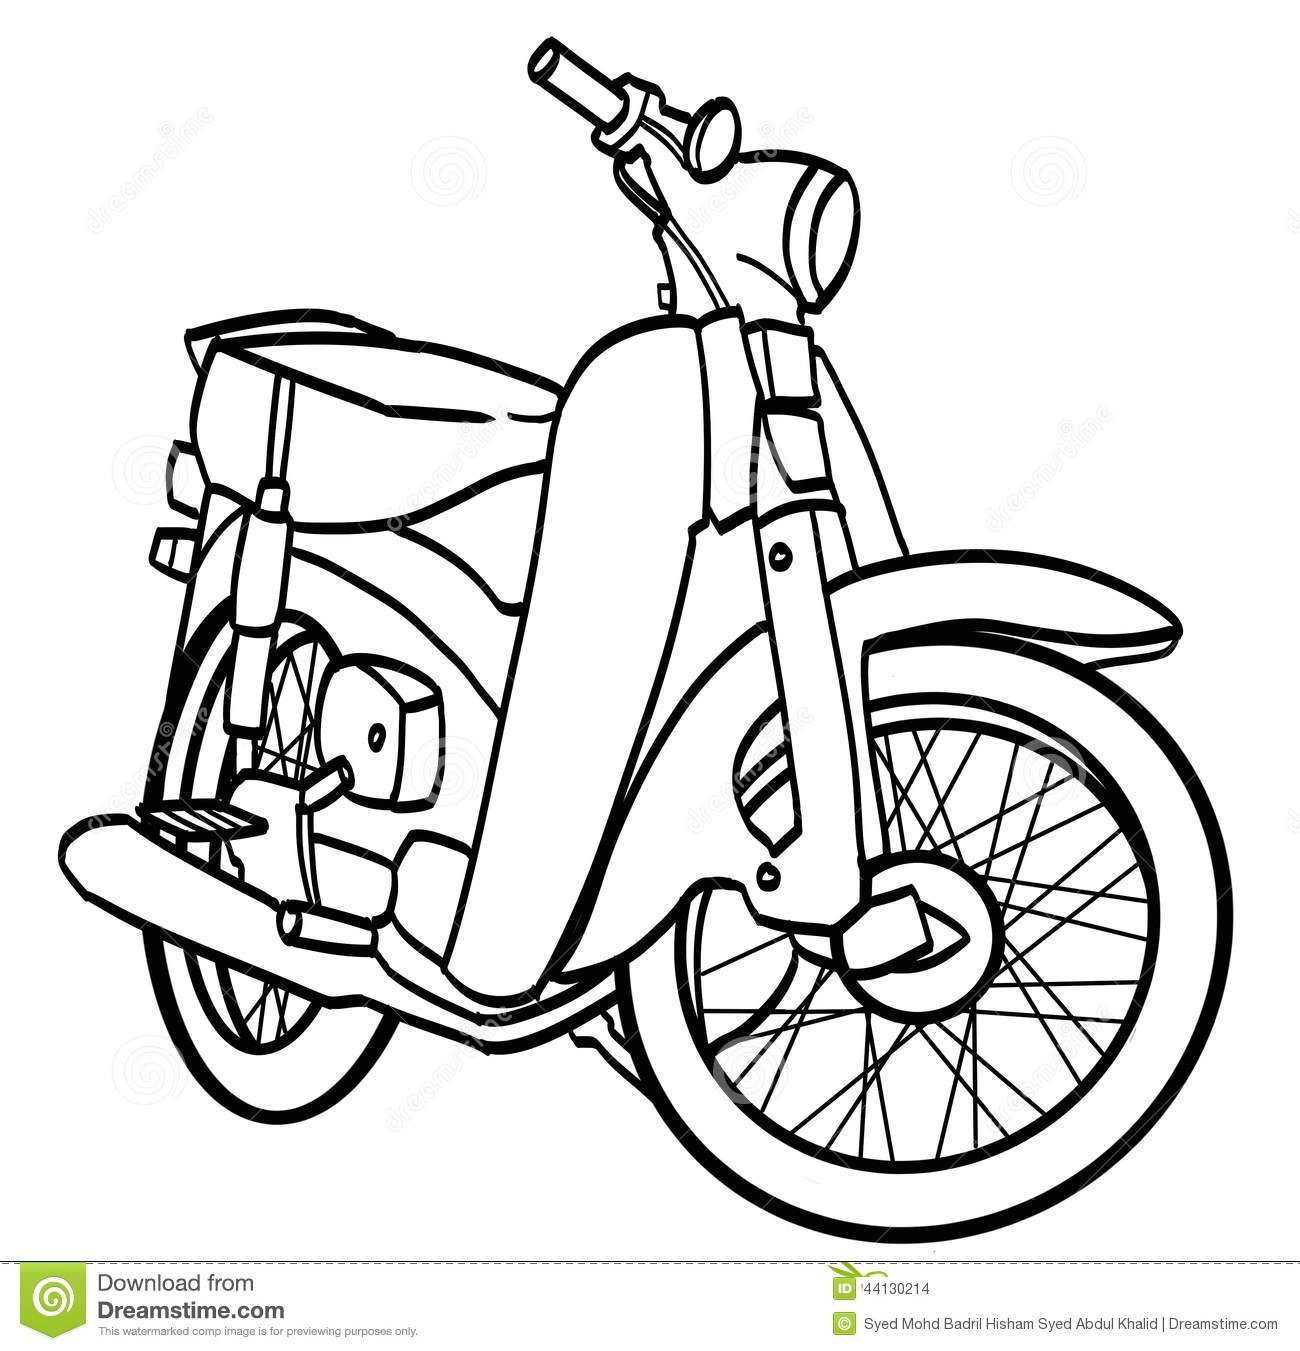 Simple Motorcycle Drawing at PaintingValley.com.